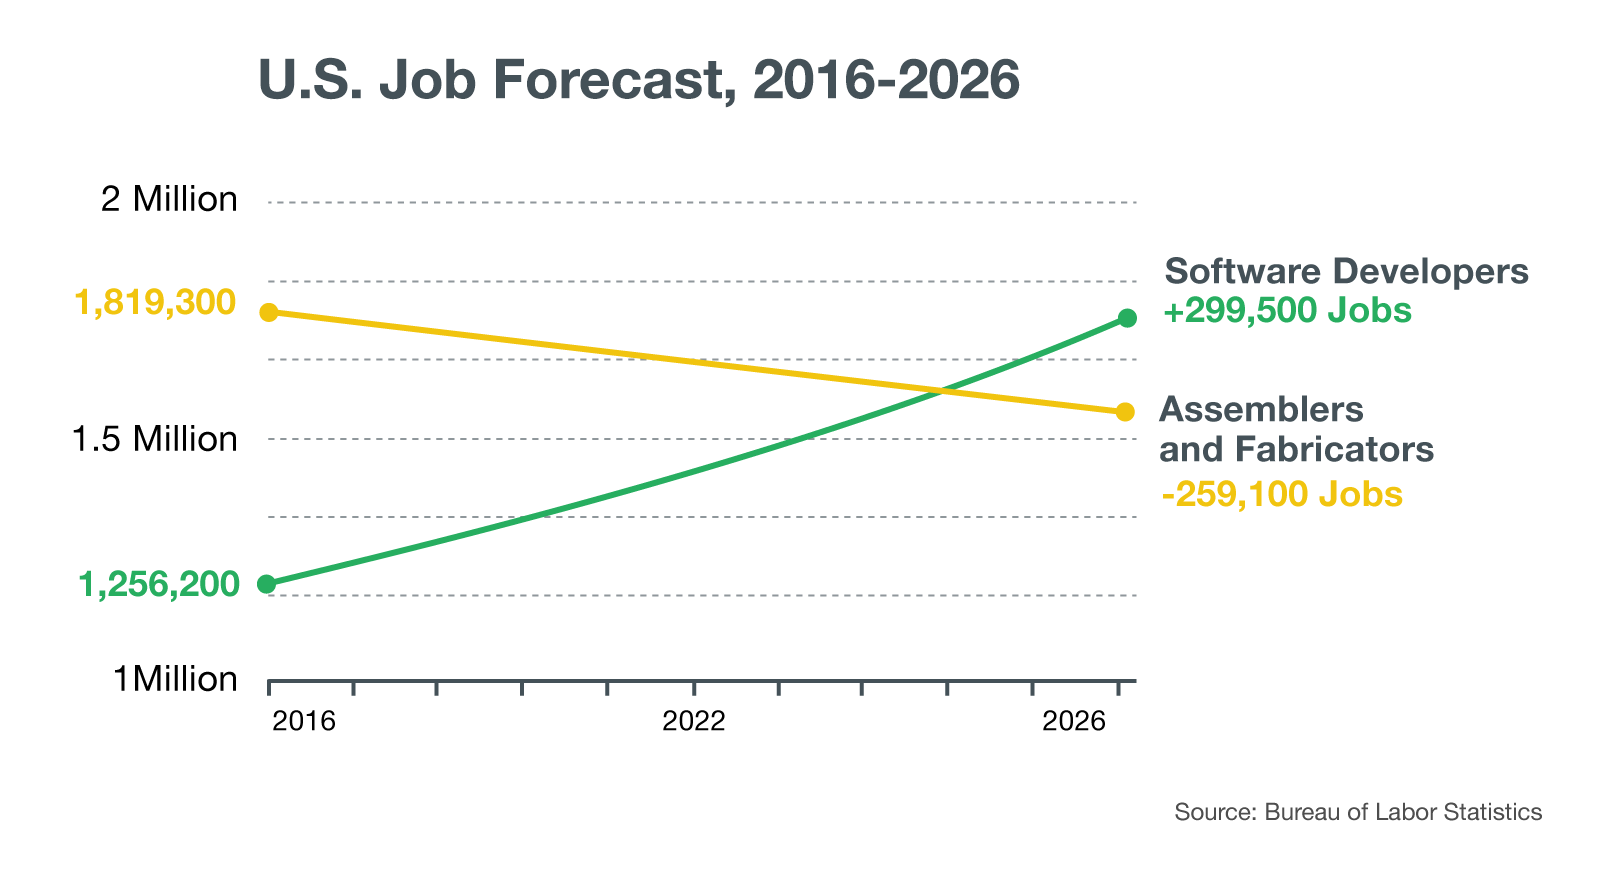 Chart of number of jobs for assemblers/fabricators vs software developers 2016-2026